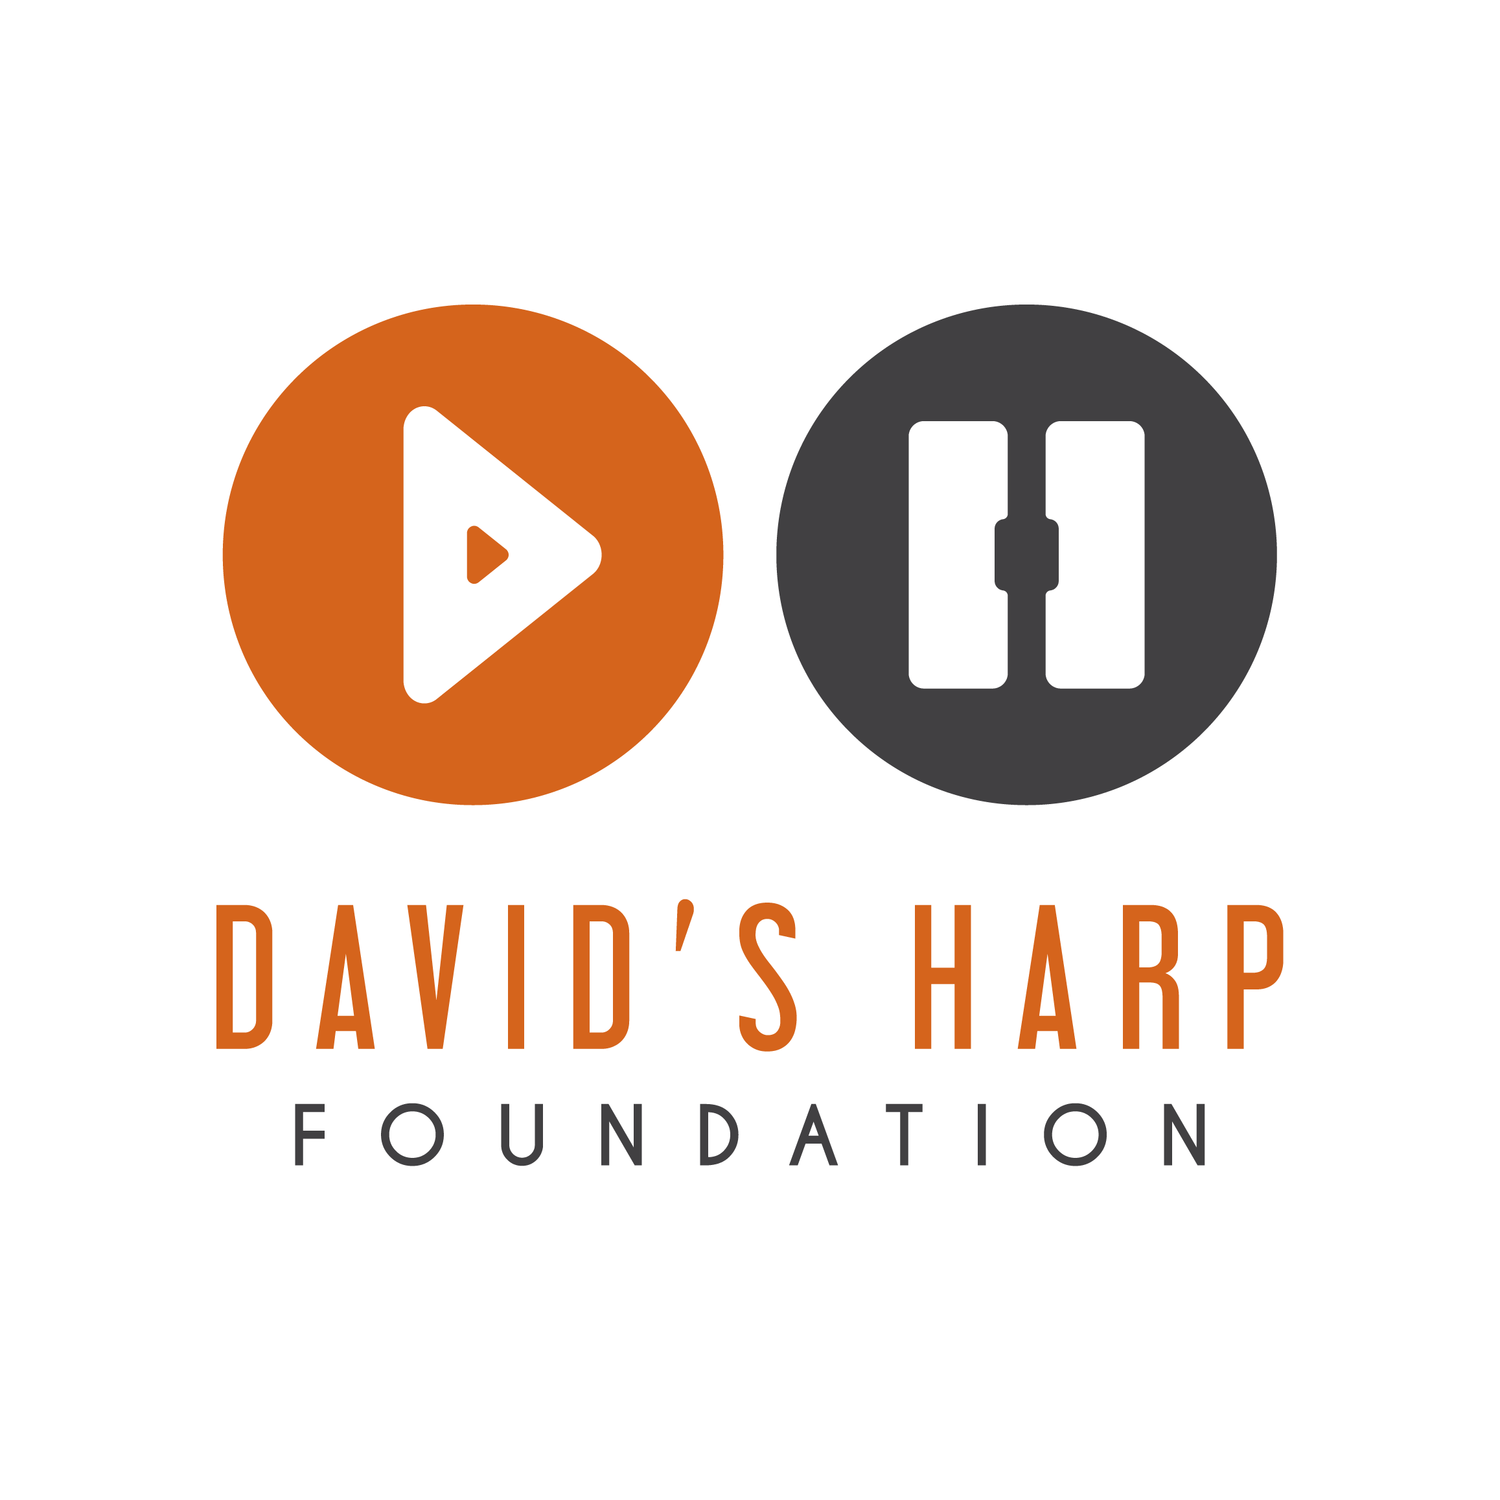 DAVID'S HARP FOUNDATION